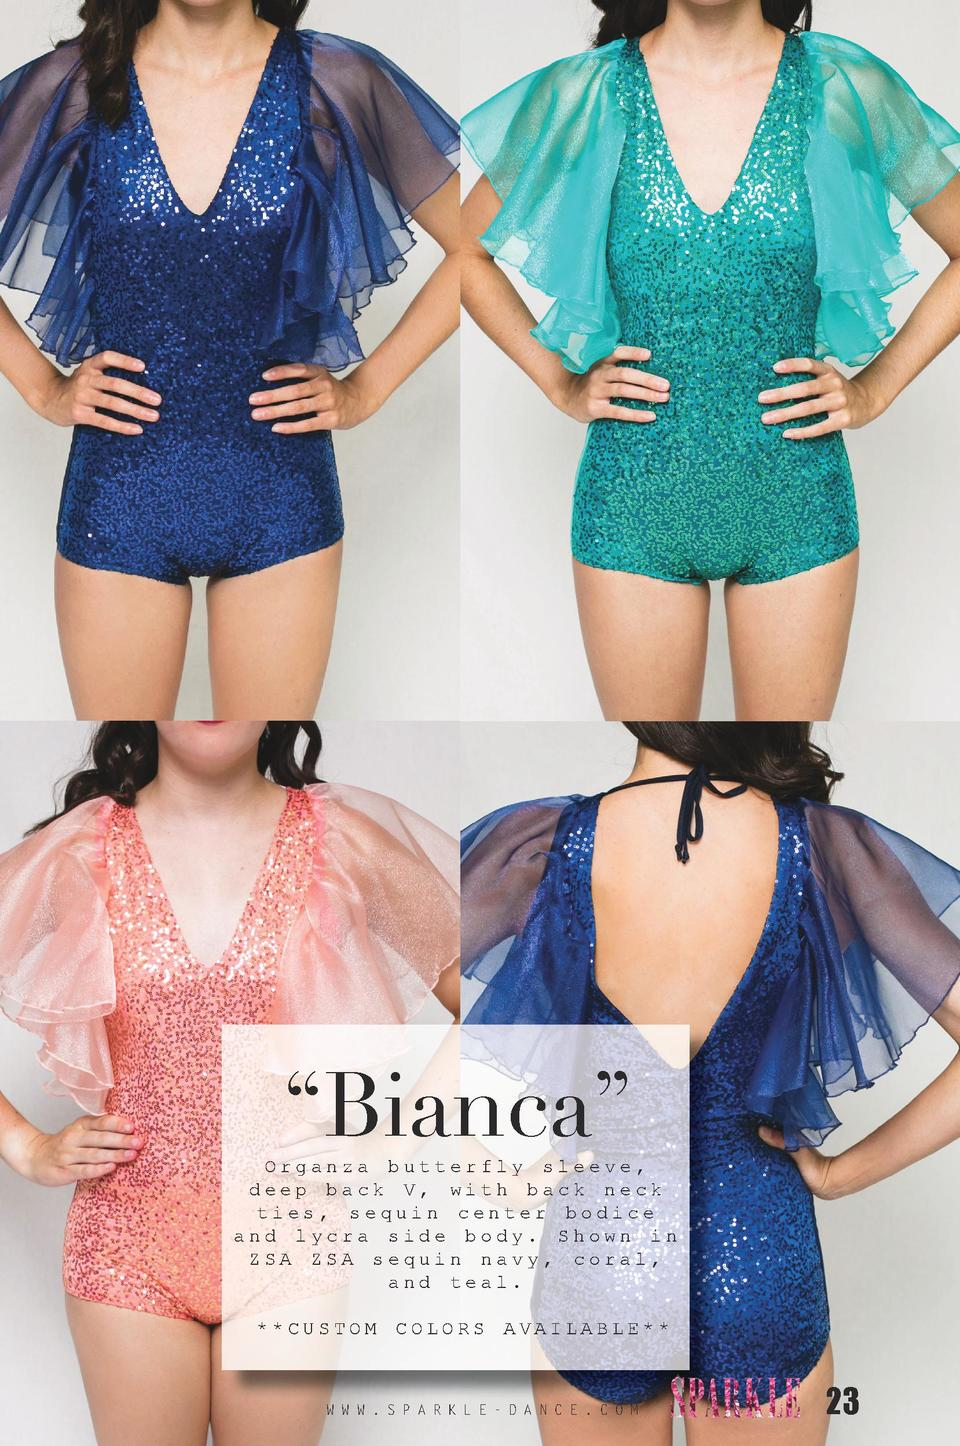 Bianca     Organza butterfly sleeve, deep back V, with back neck ties, sequin center bodice and lycra side body. Shown ...